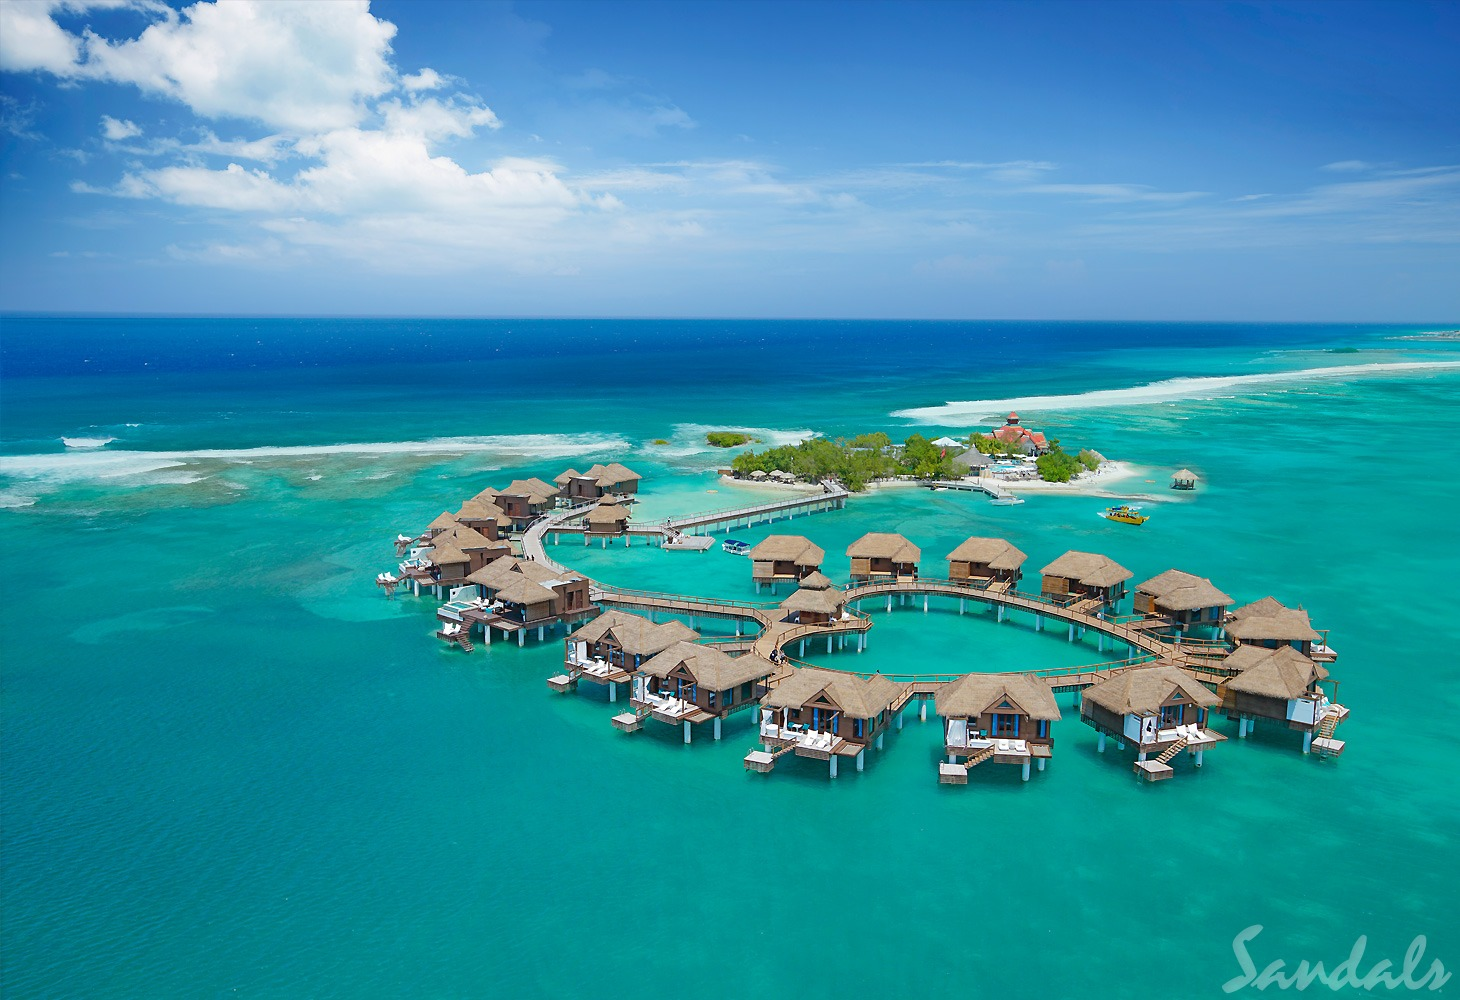 Best Overwater Bungalows Around the World According to Travel Bloggers